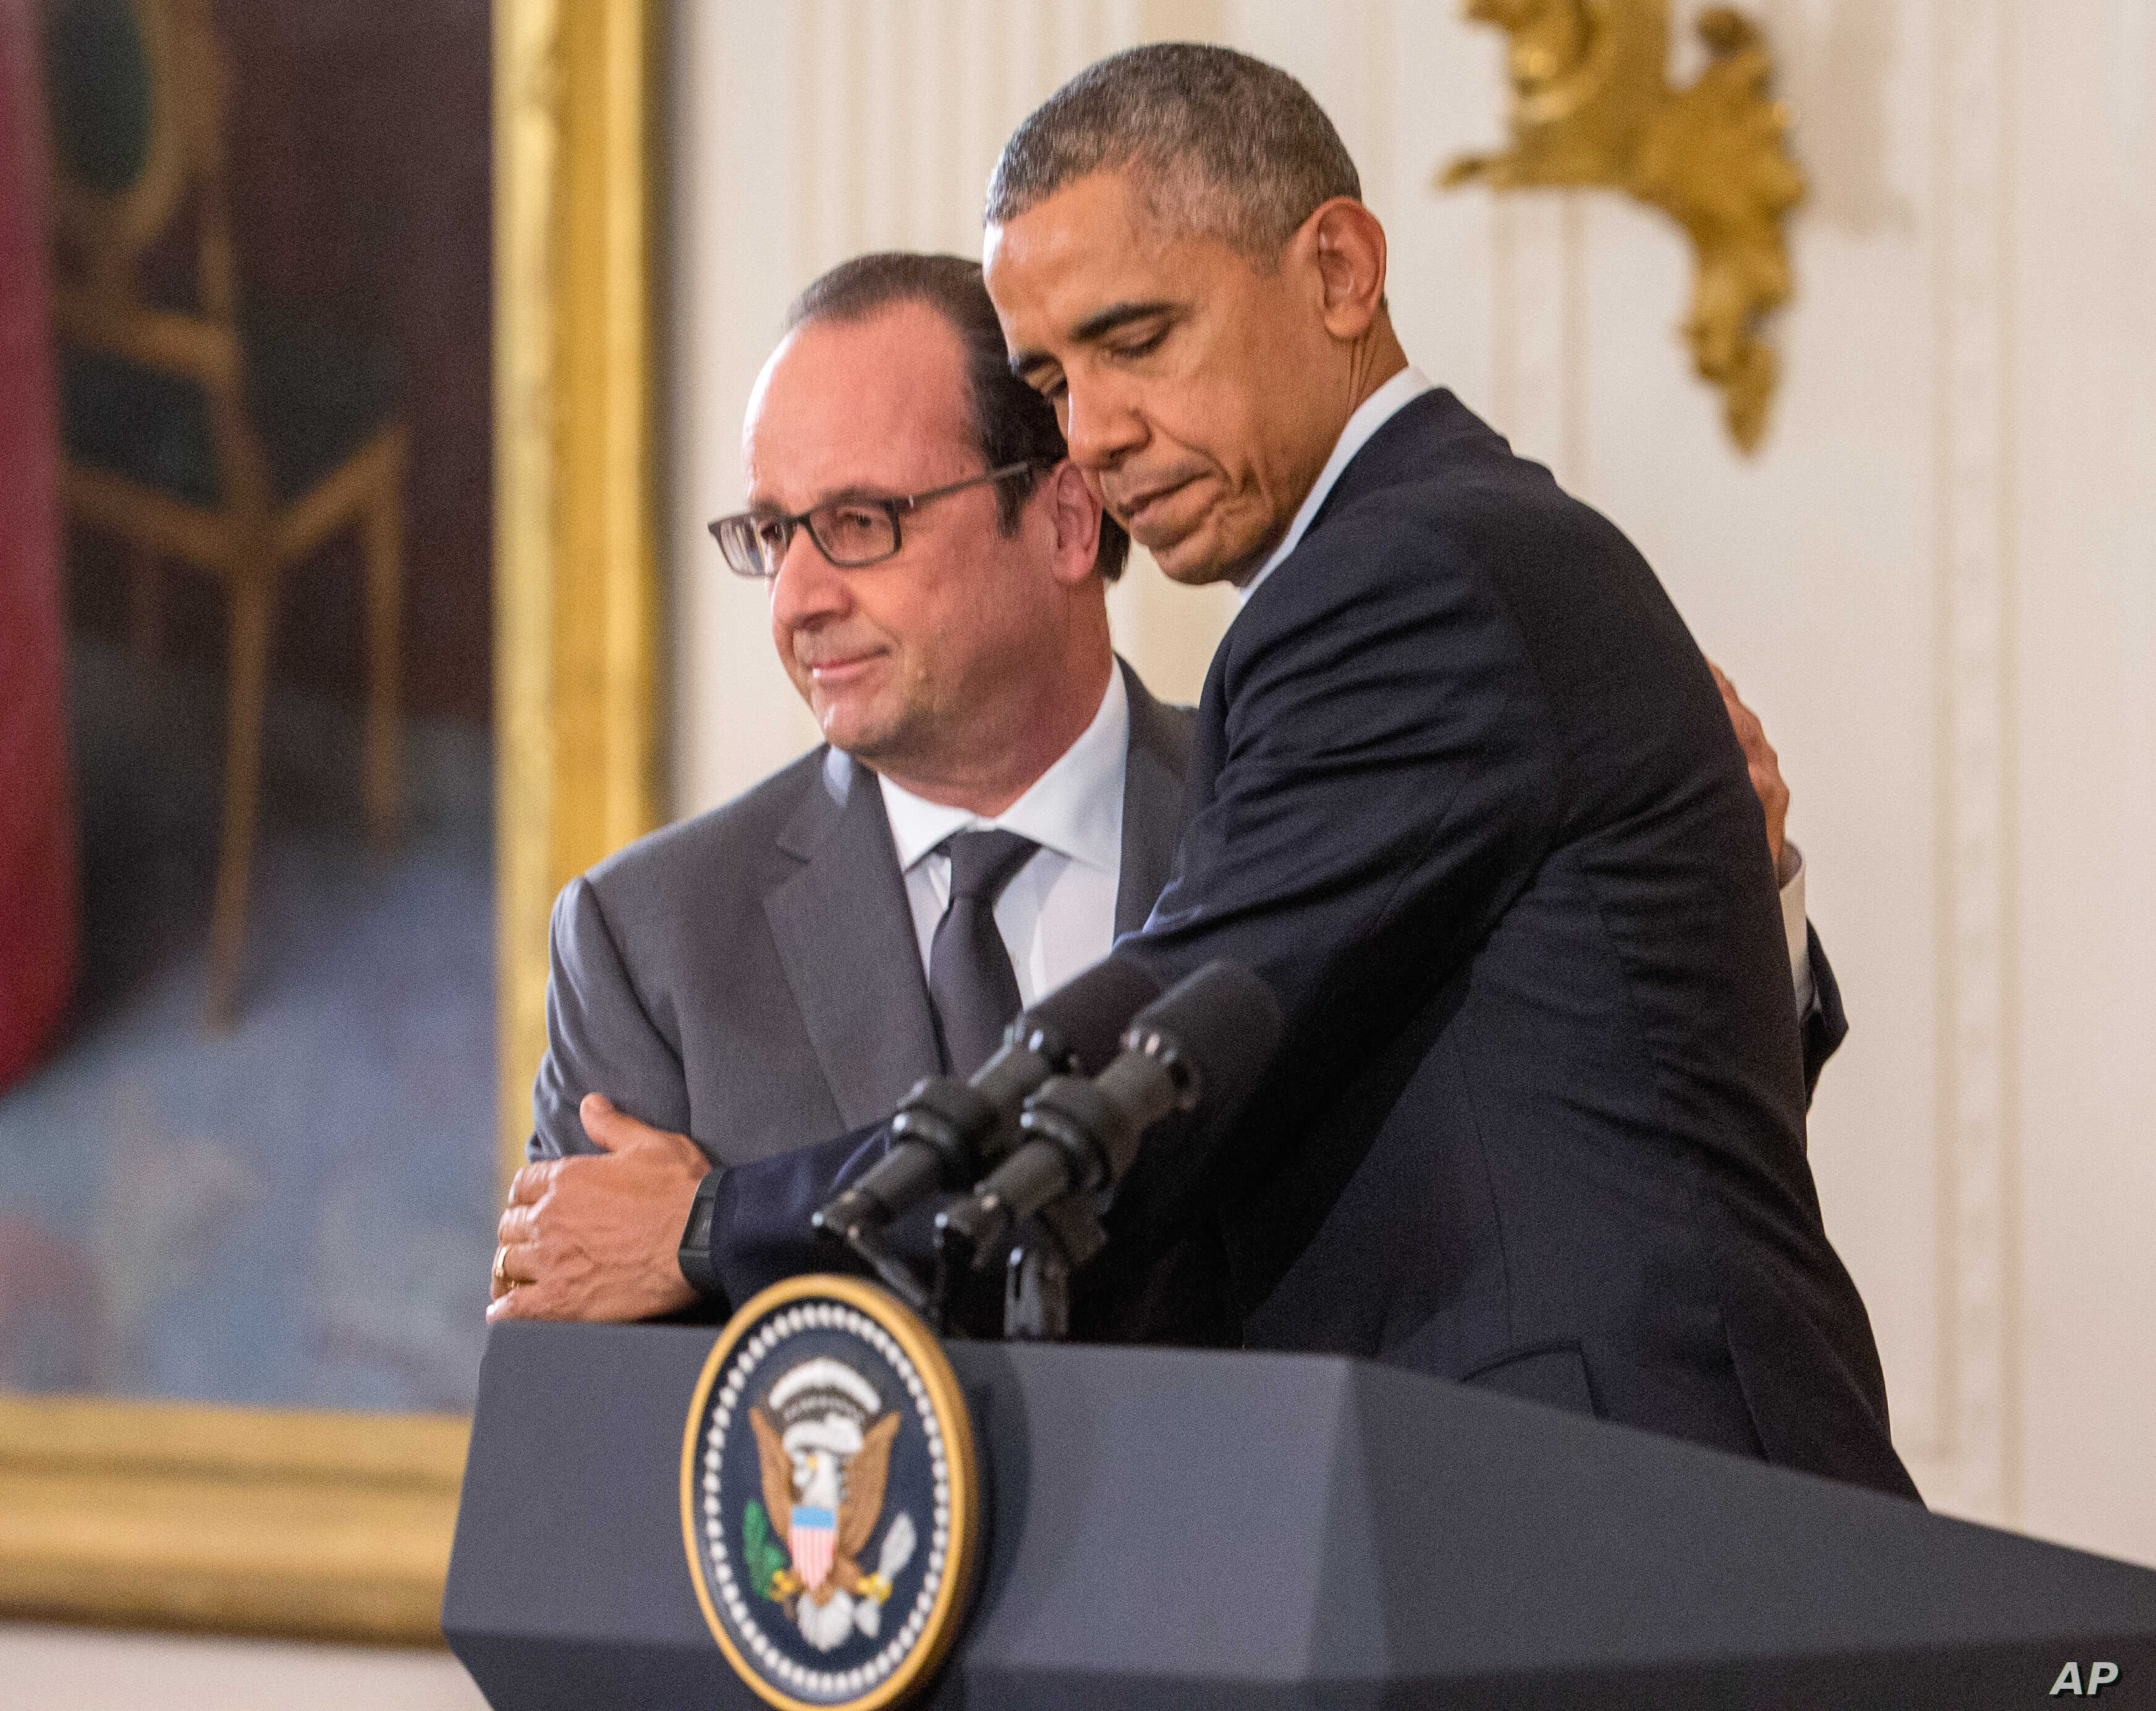 President Barack Obama and French President Francois Hollande embrace during a joint news conference in the East Room of the White House in Washington, Nov. 24, 2015.